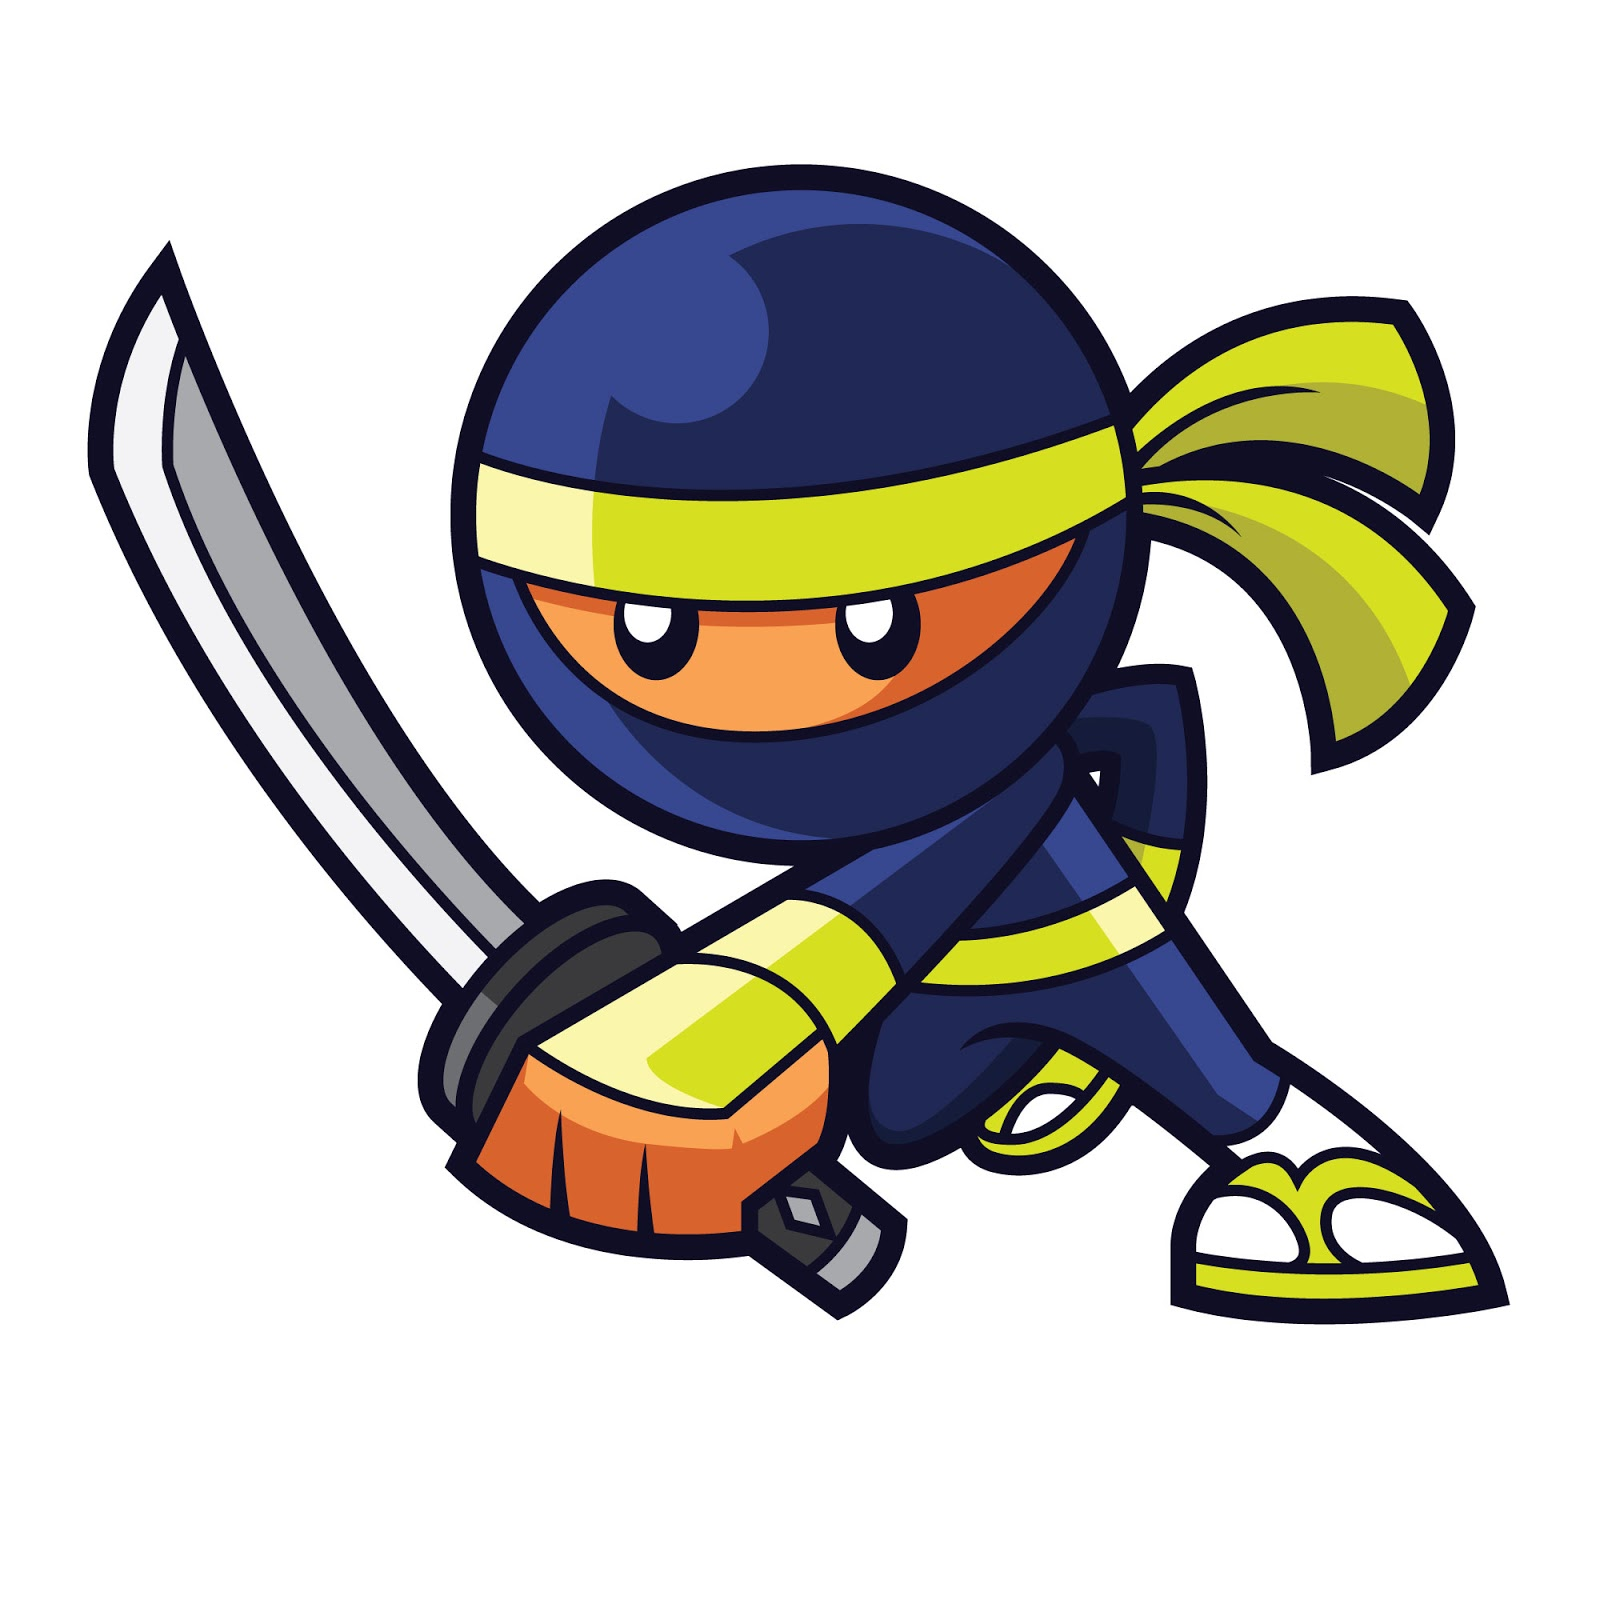 Ninja Warrior Logo Free Download Vector CDR, AI, EPS and PNG Formats